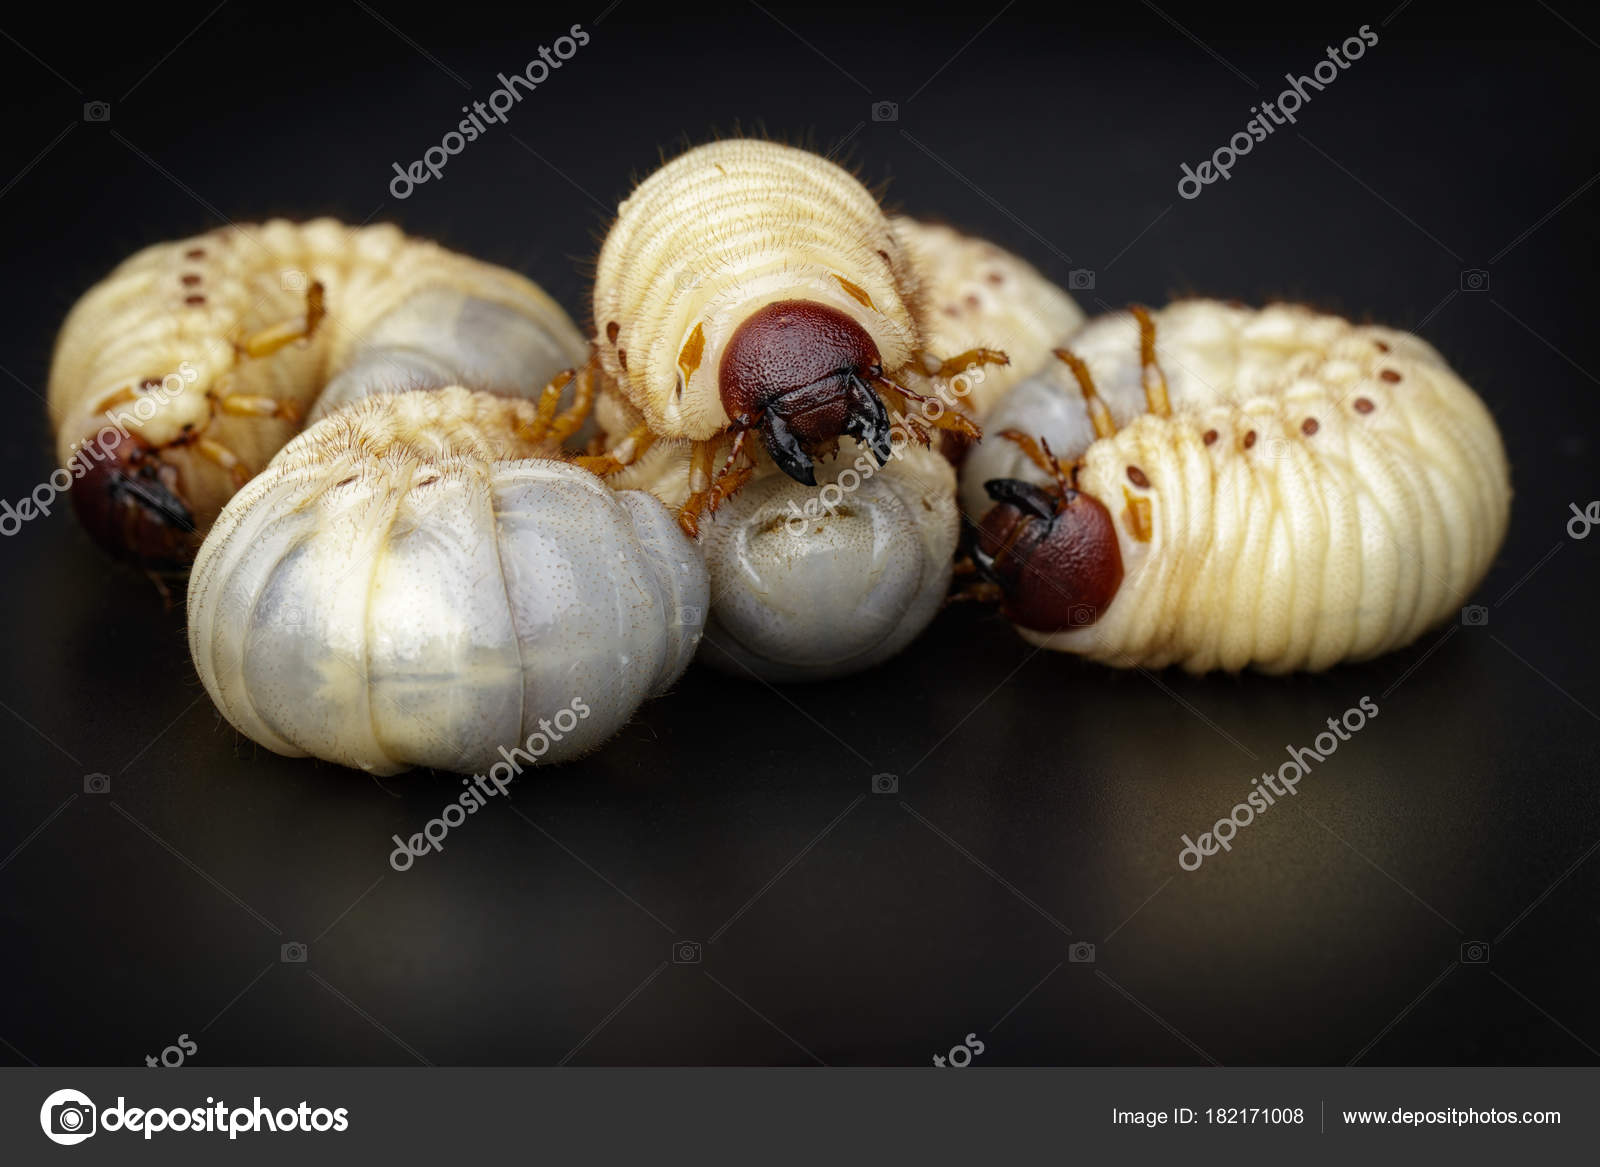 Image Of Grub Worms Coconut Rhinoceros Beetle Oryctes